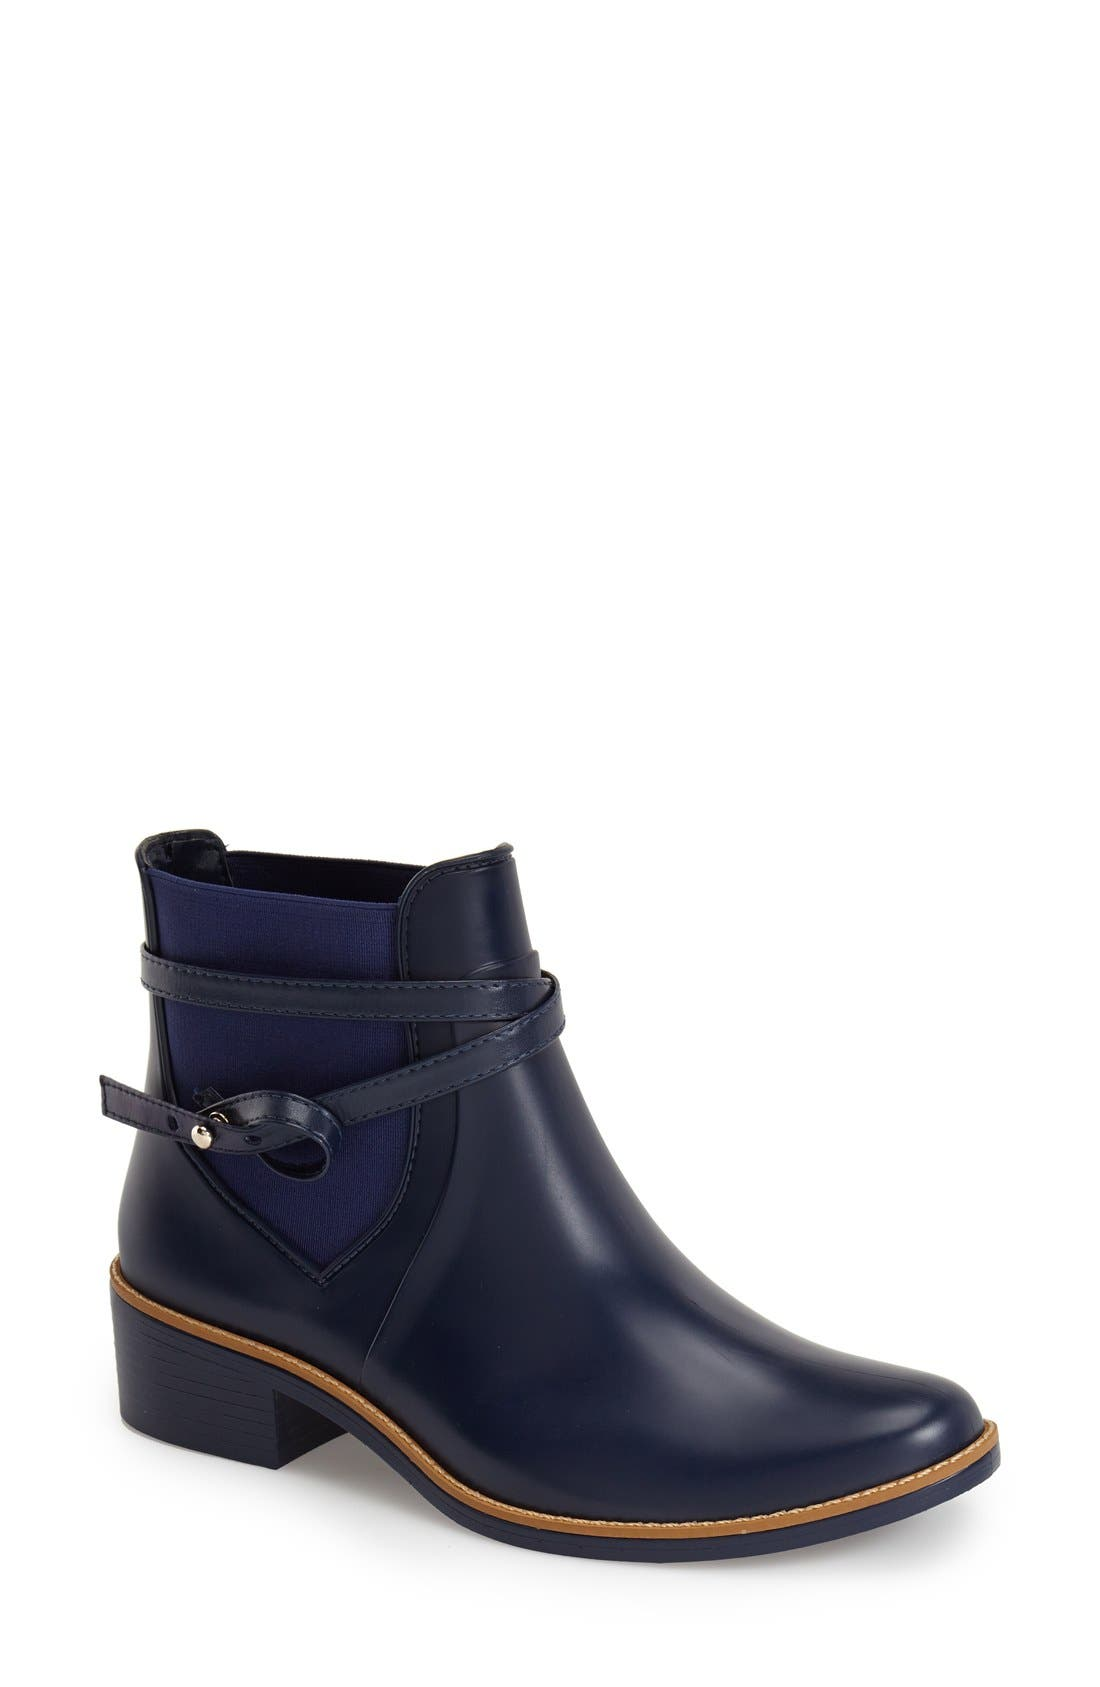 Main Image - Bernardo Peony Short Waterproof Rain Boot (Women)